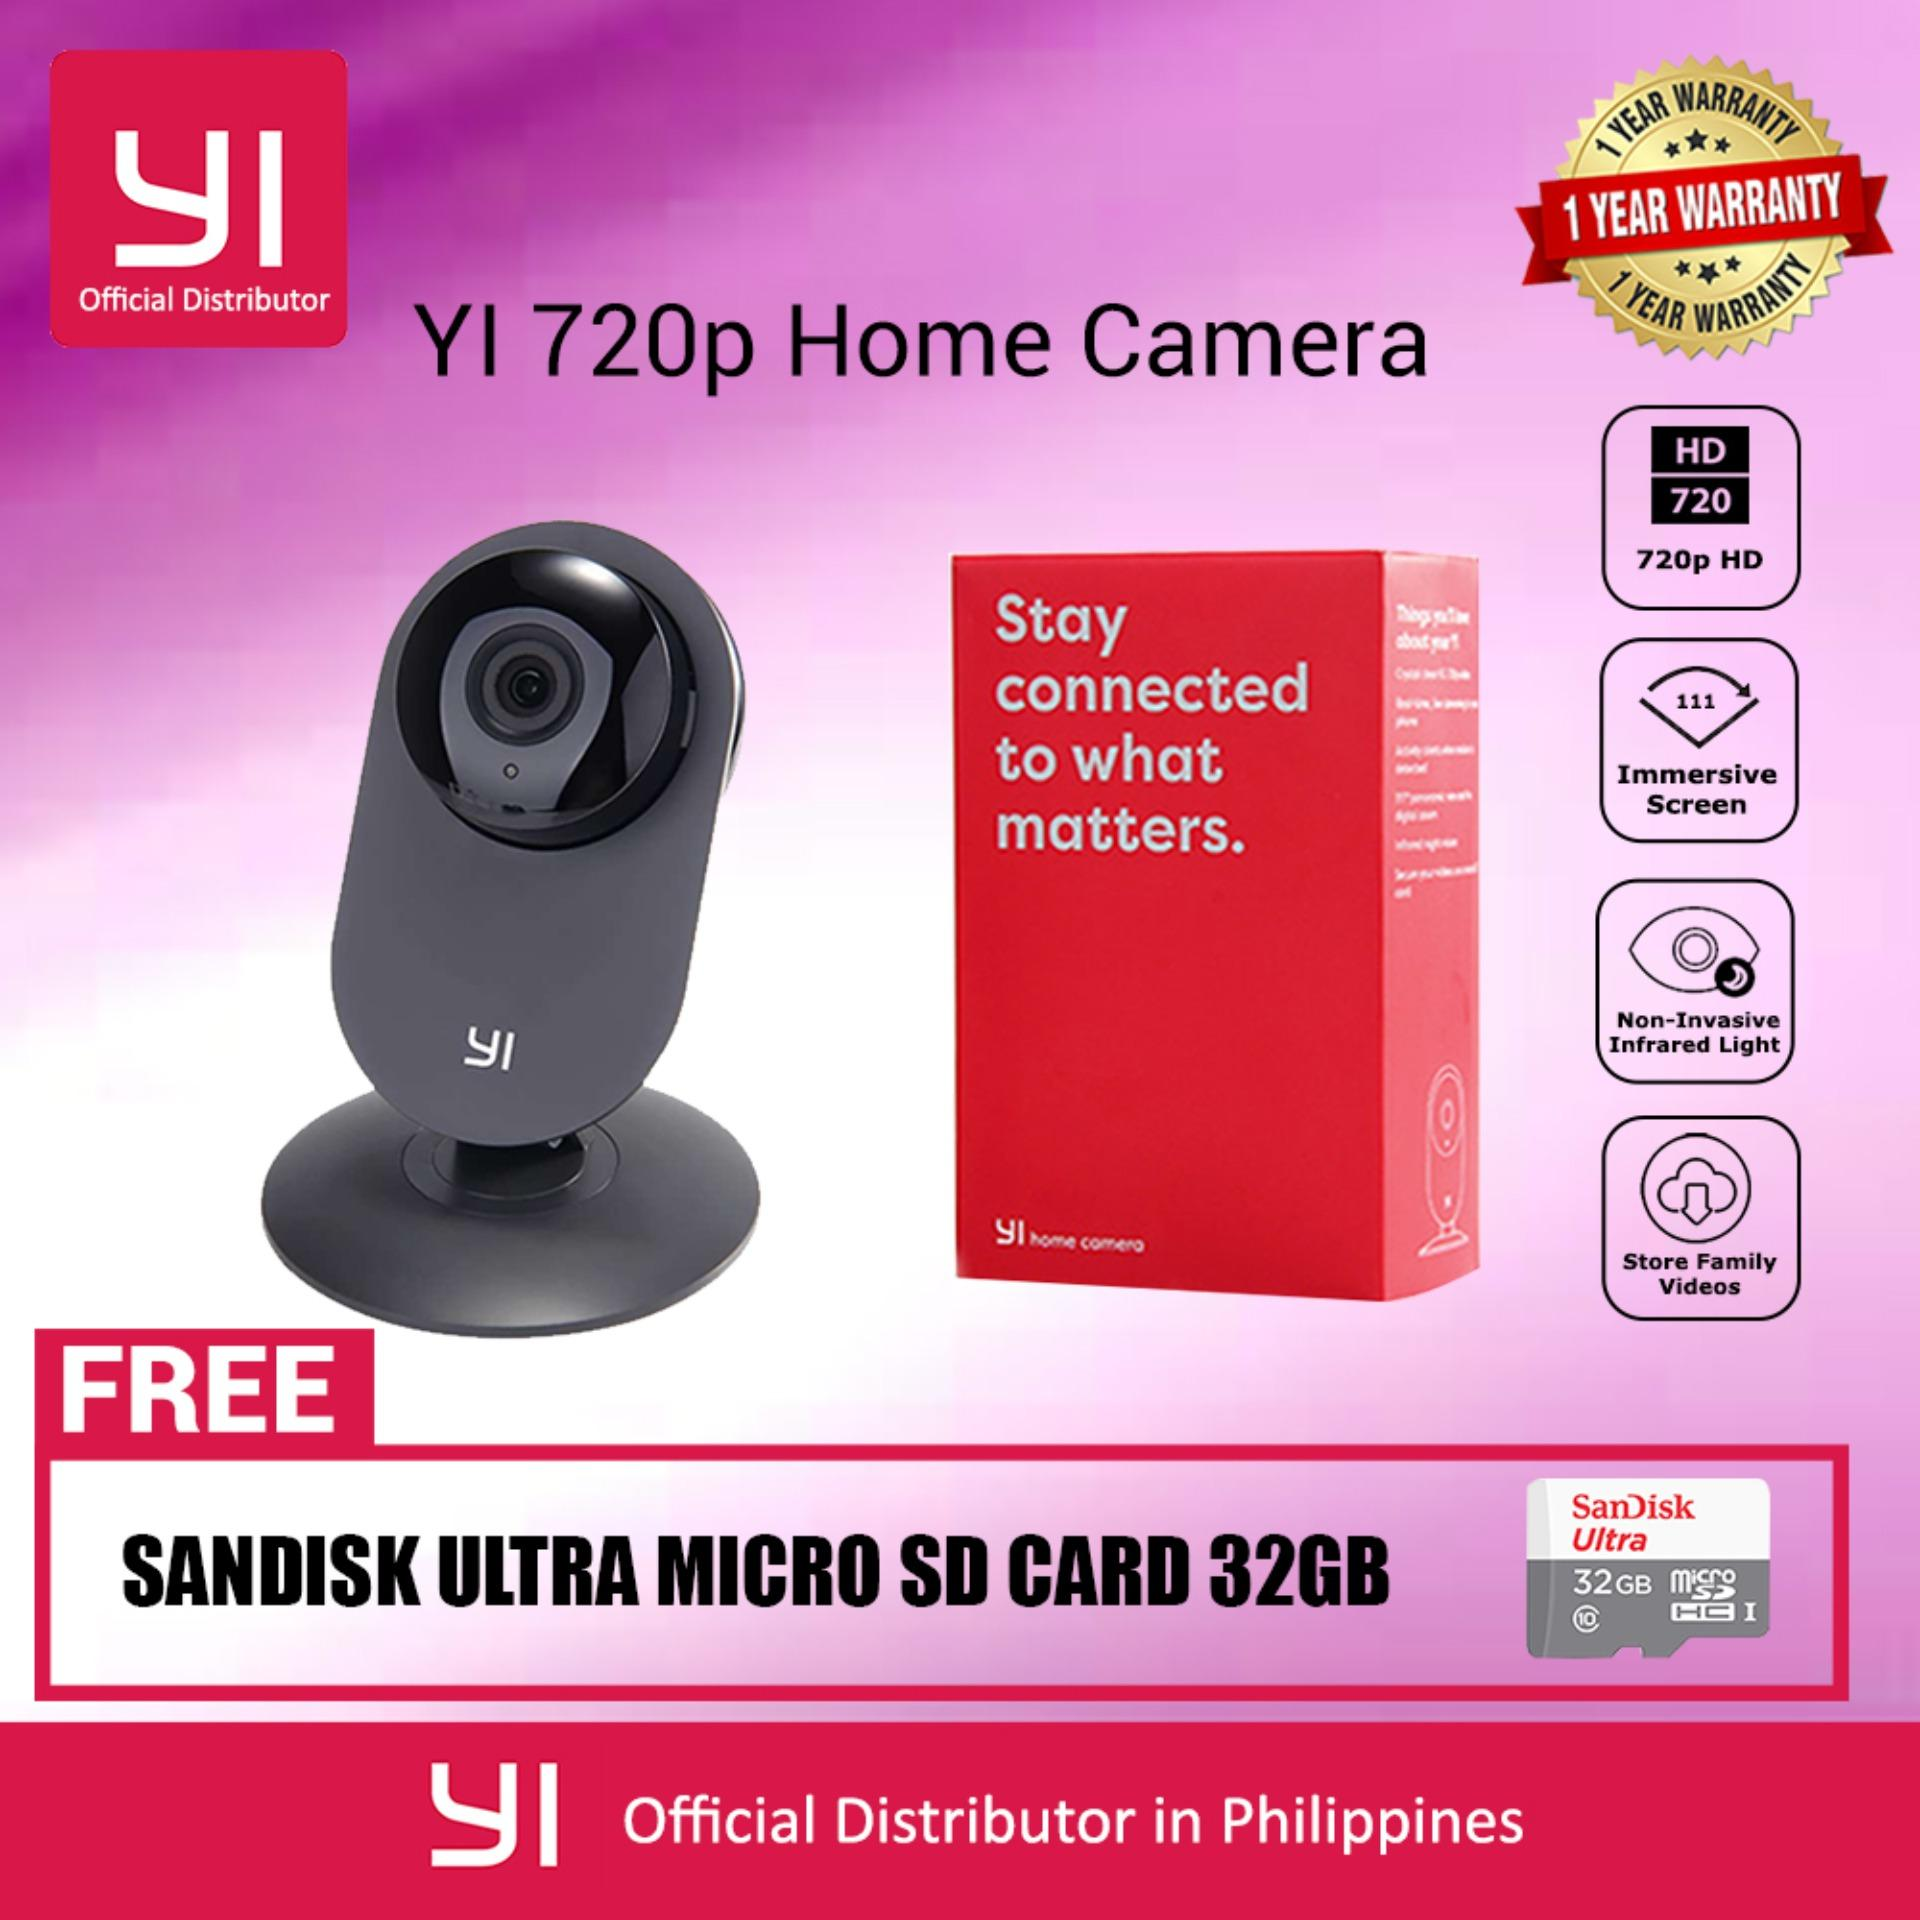 YI Home Camera IP Cam CCTV Monitor 720P HD Video Monitor IP Wireless Network Surveillance Security Night Vision Alert Motion Detection EU/US Version with SanDisk 32GB Micro SD Card